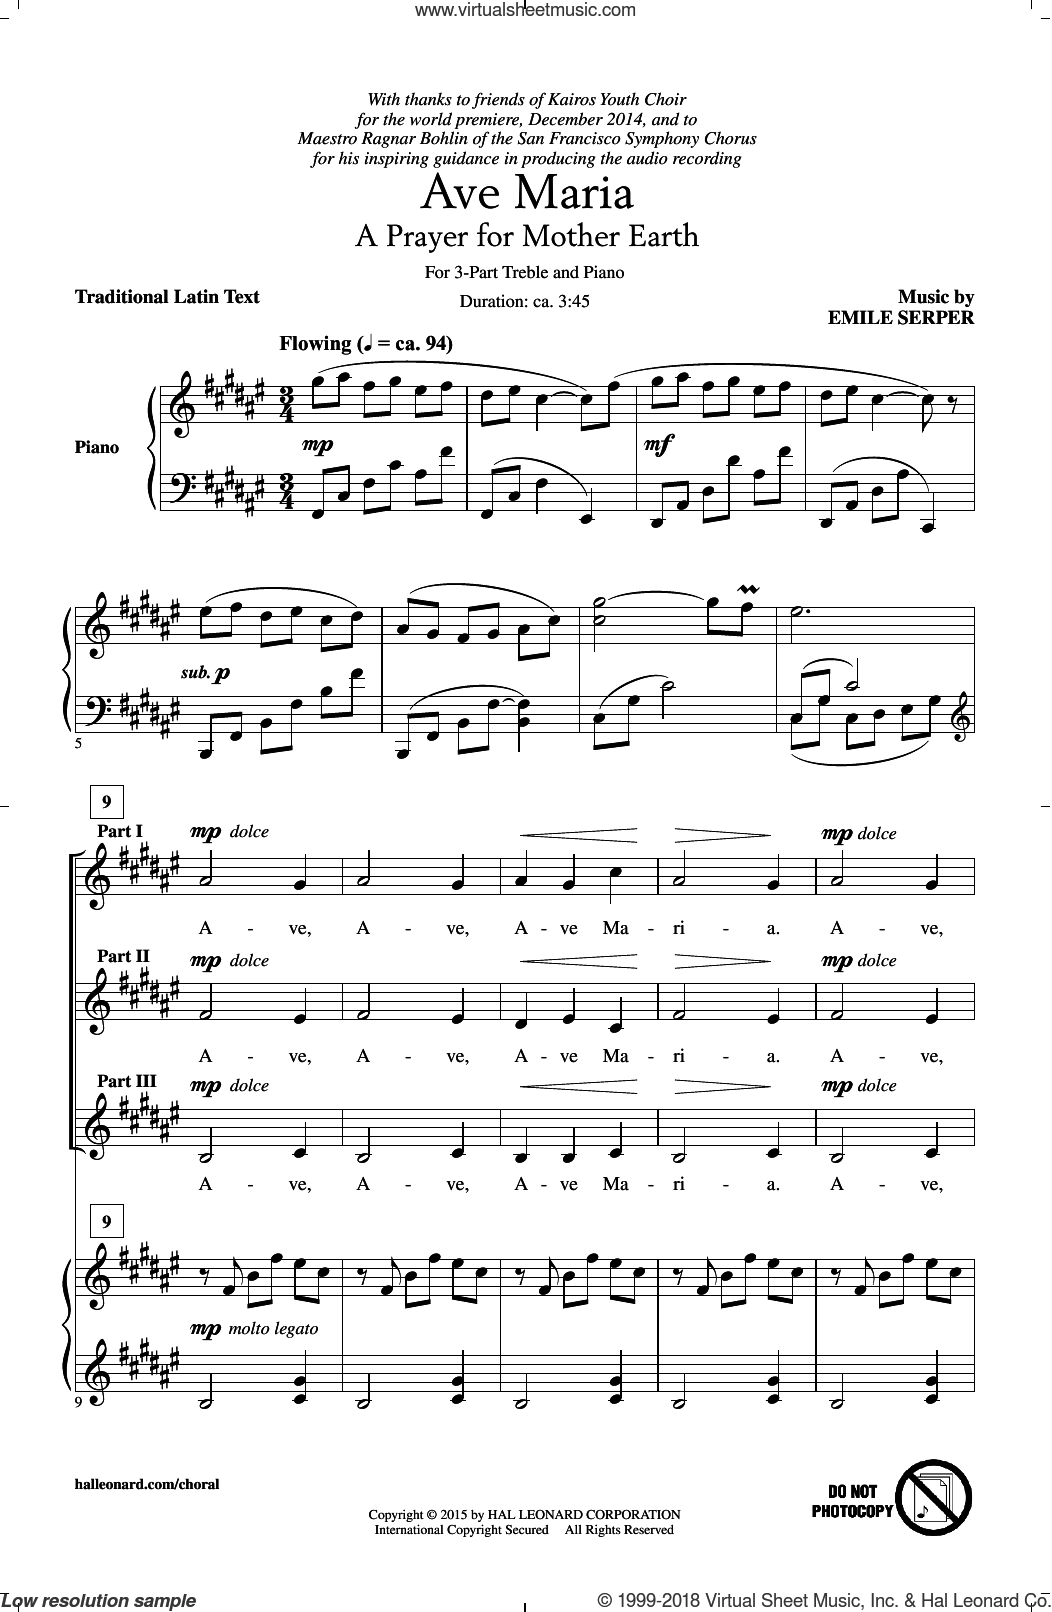 Ave Maria sheet music for choir (3-Part Treble) by Emile Serper and Miscellaneous, intermediate skill level